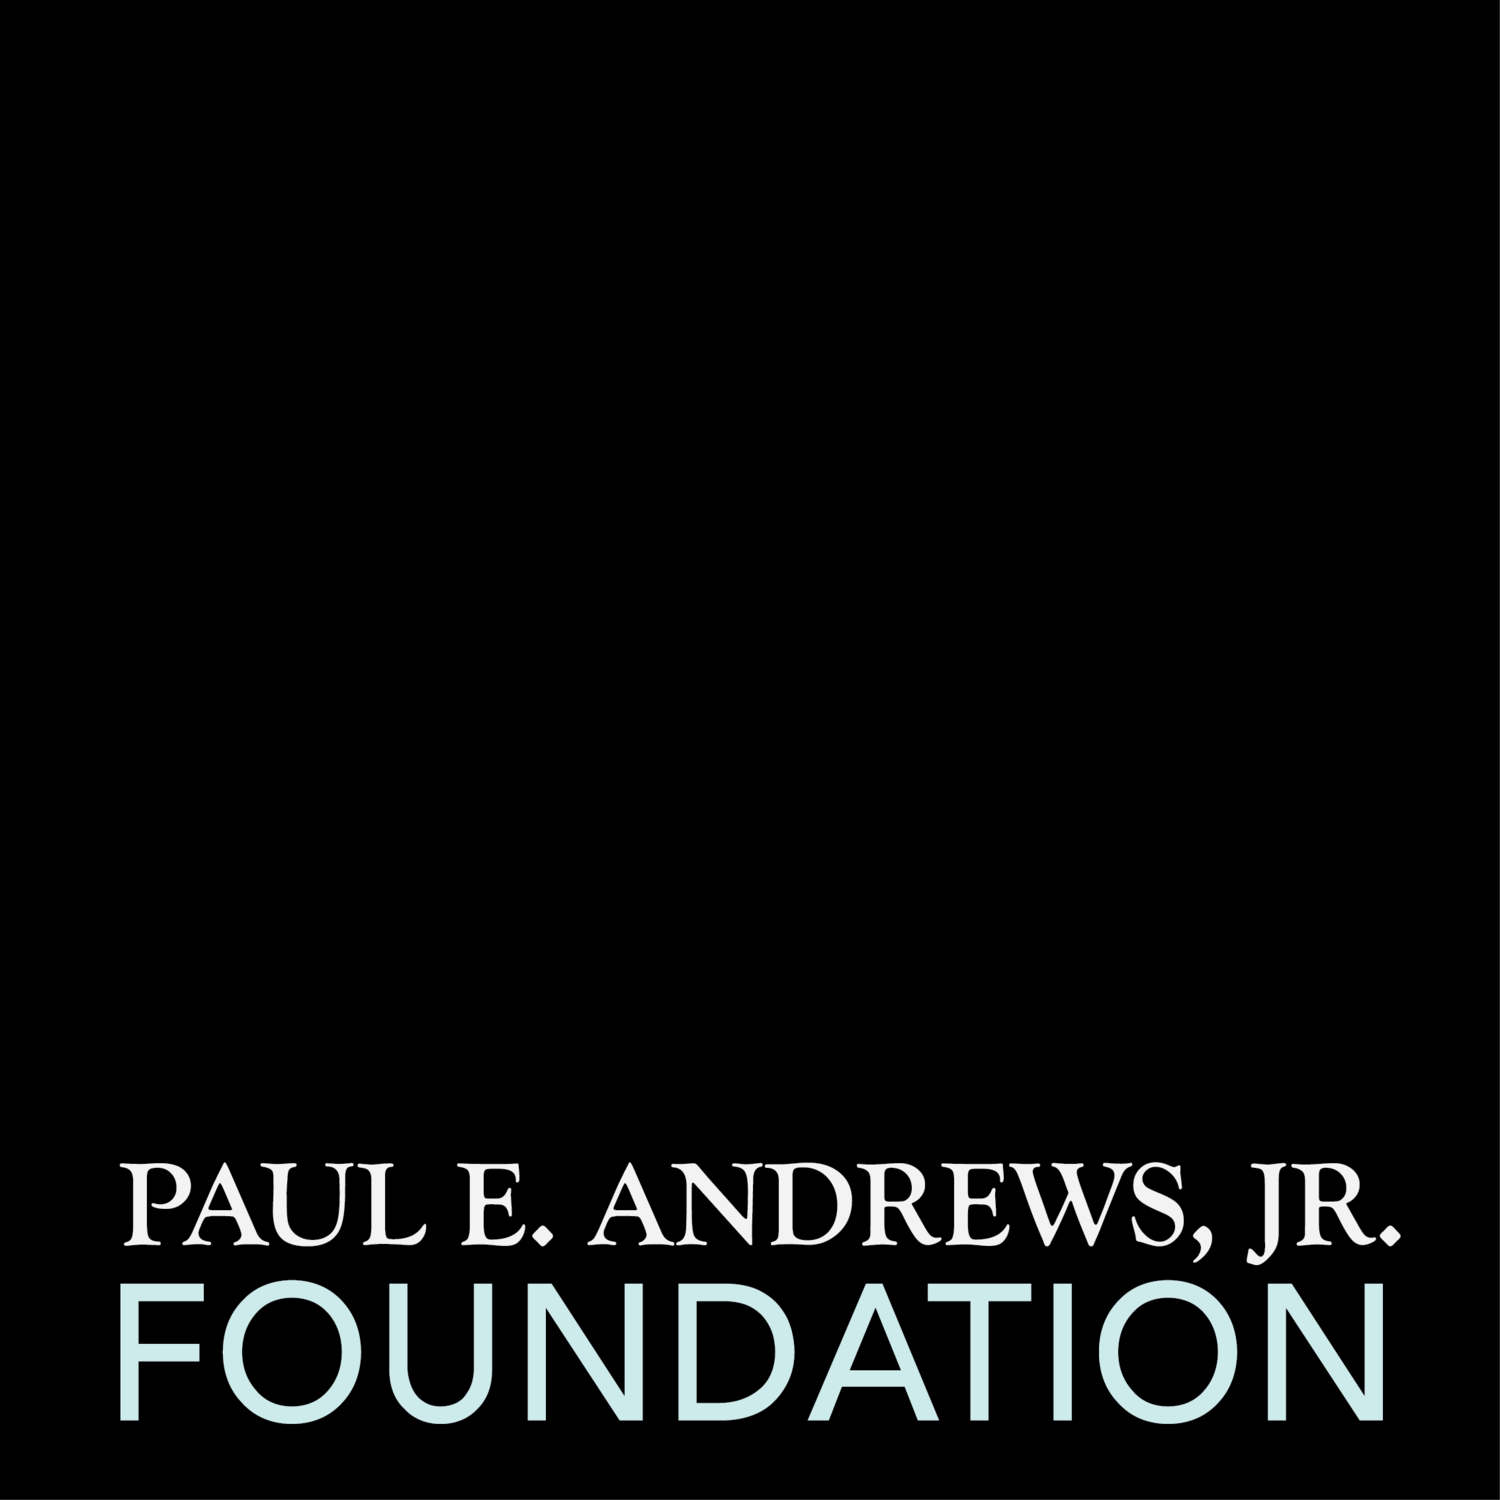 Paul E. Andrews, Jr. Foundation